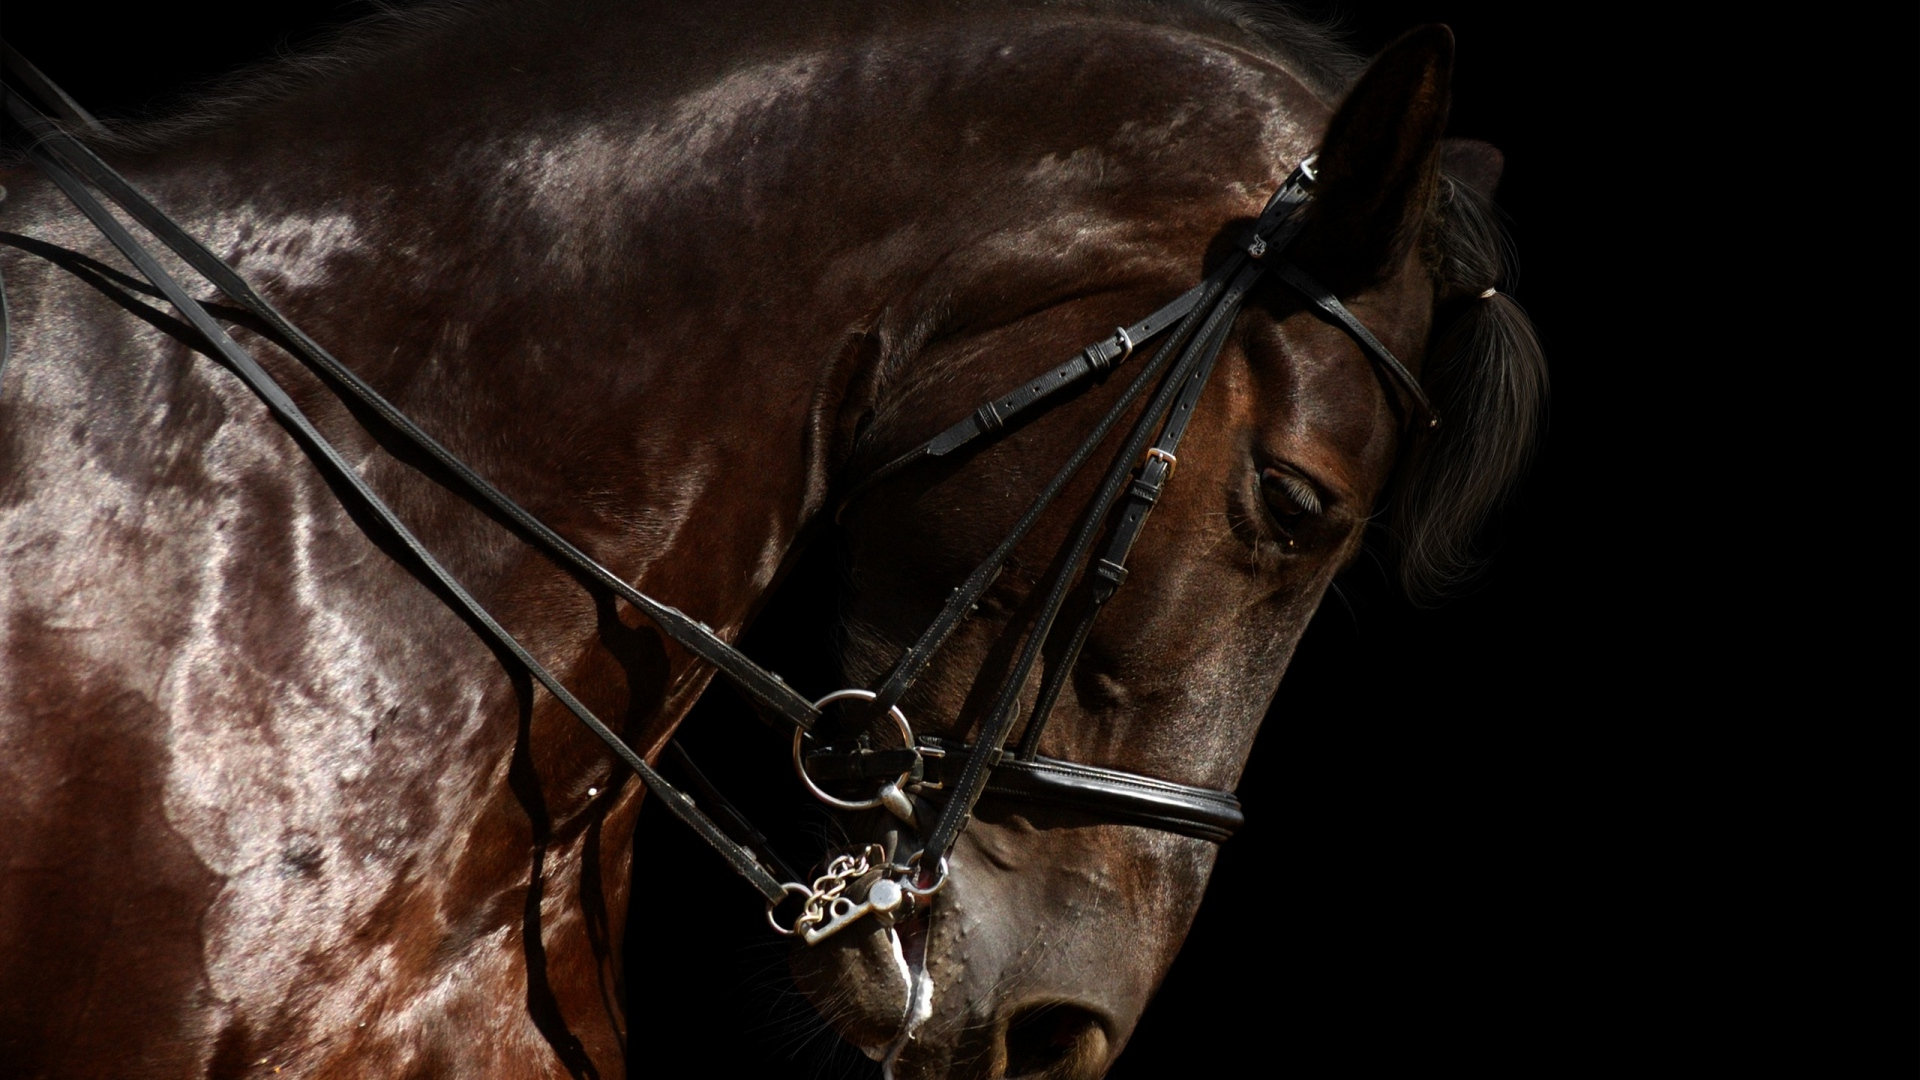 Download Wallpaper 1920x1080 Horse Harness Jumping Head Full Hd 1080p Hd Background